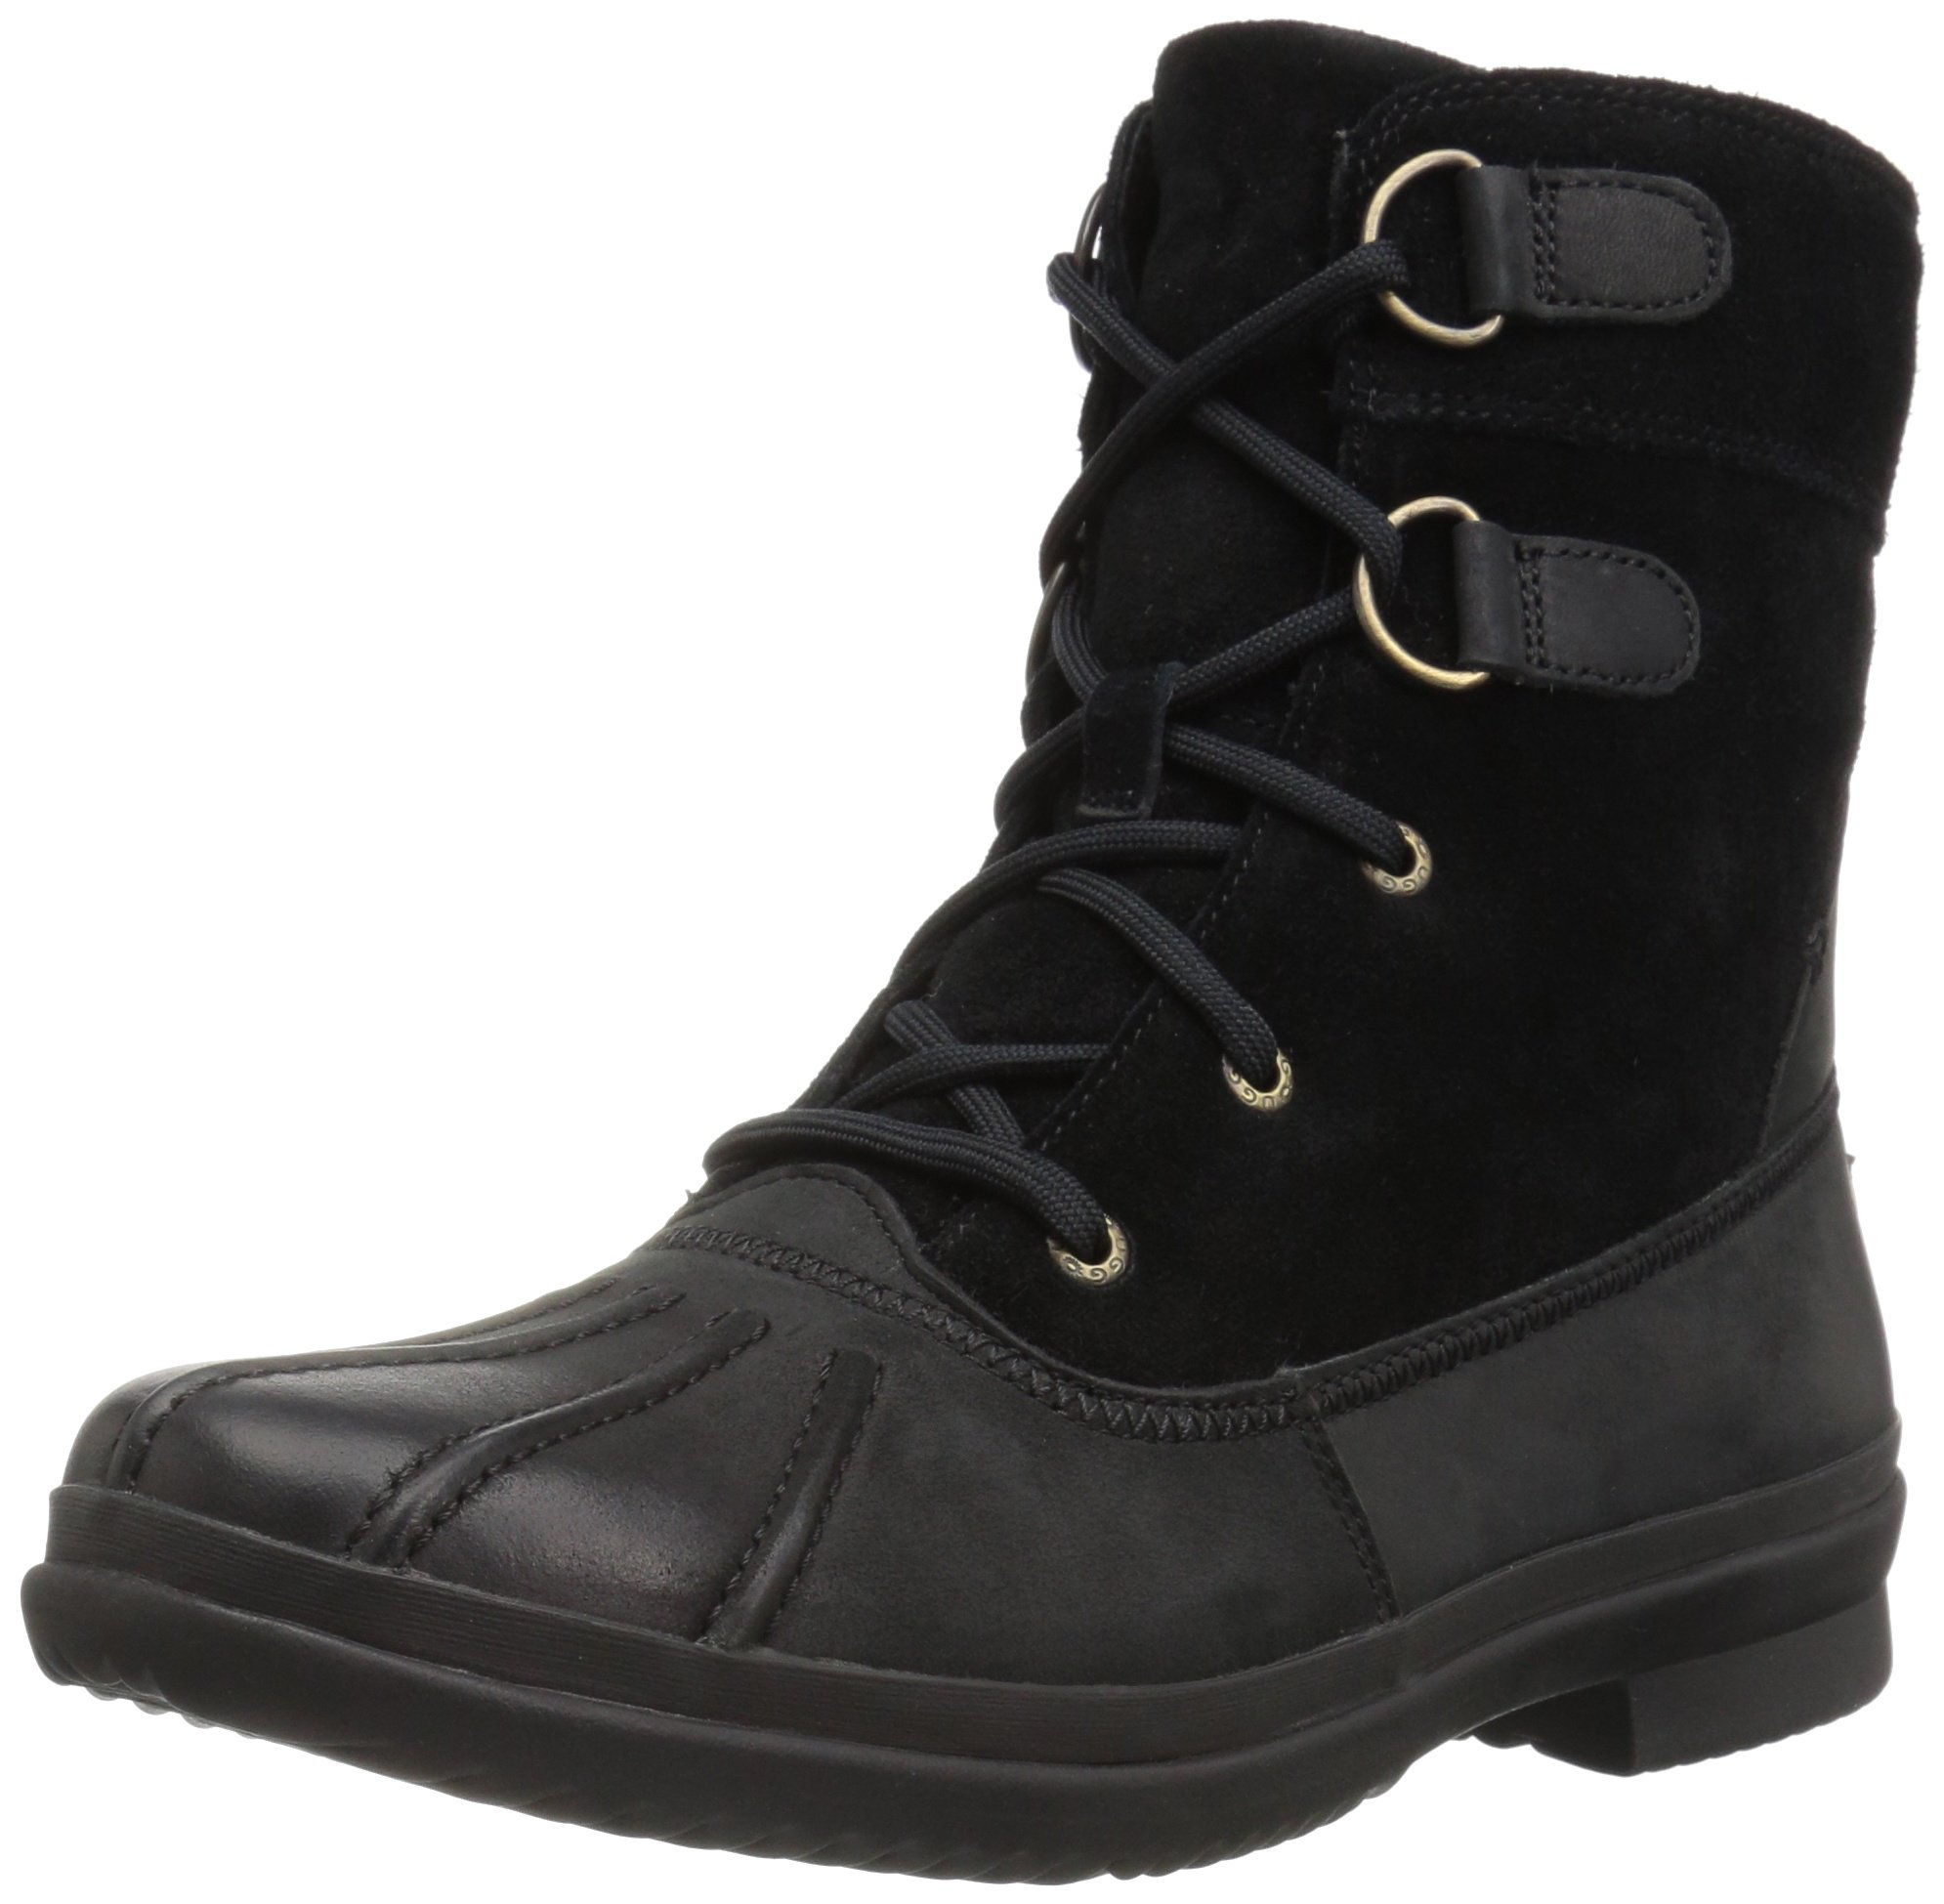 UGG Women's Azaria Winter Boot, Black, 9 M US